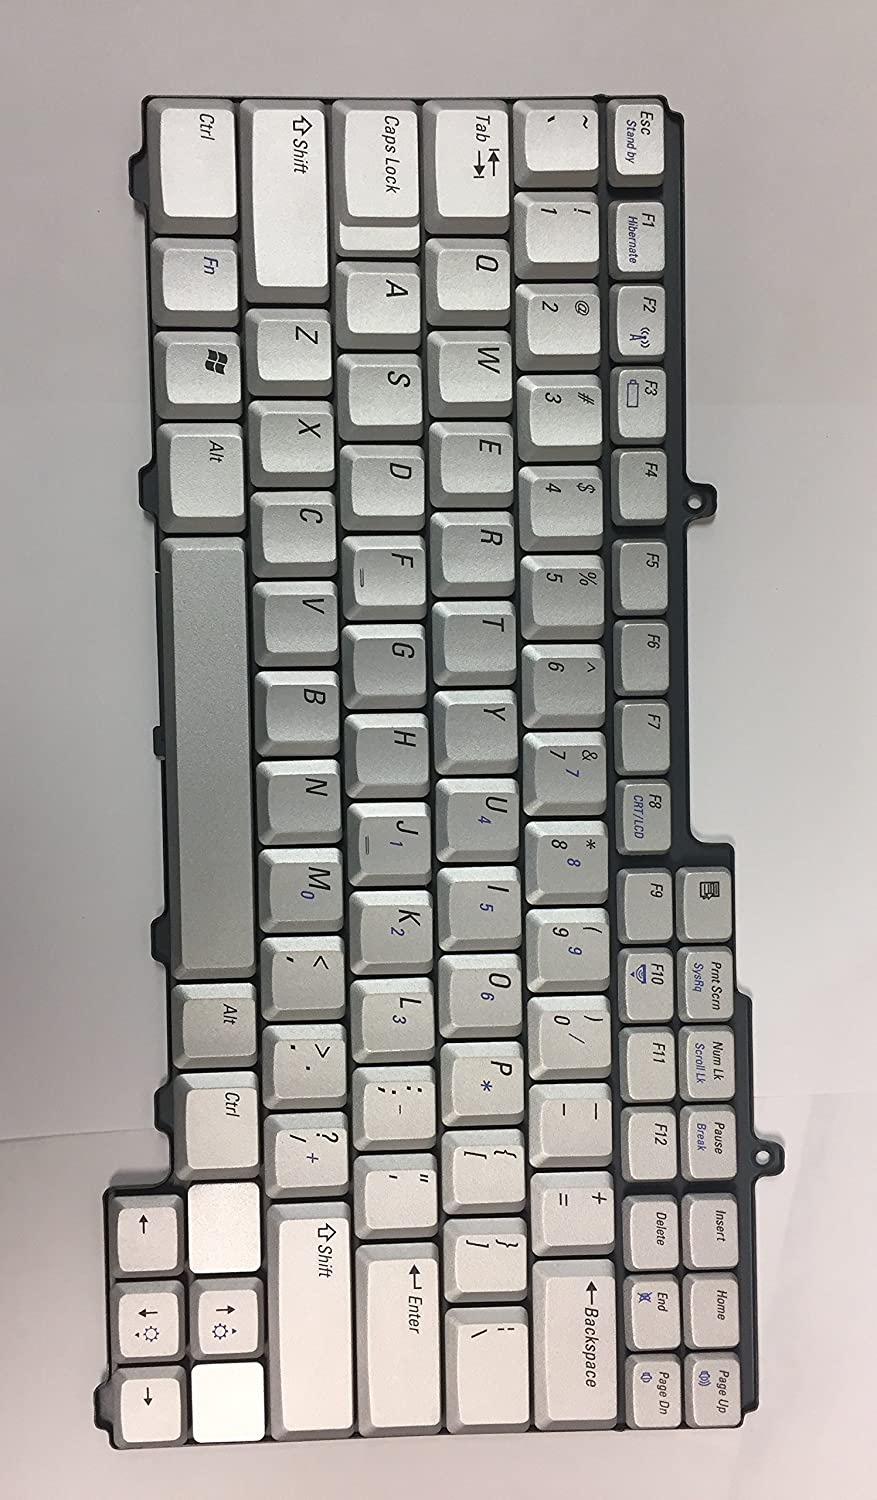 0WG343 Dell Inspiron XPS M1710 Grey OEM Replacement Laptop Keyboard